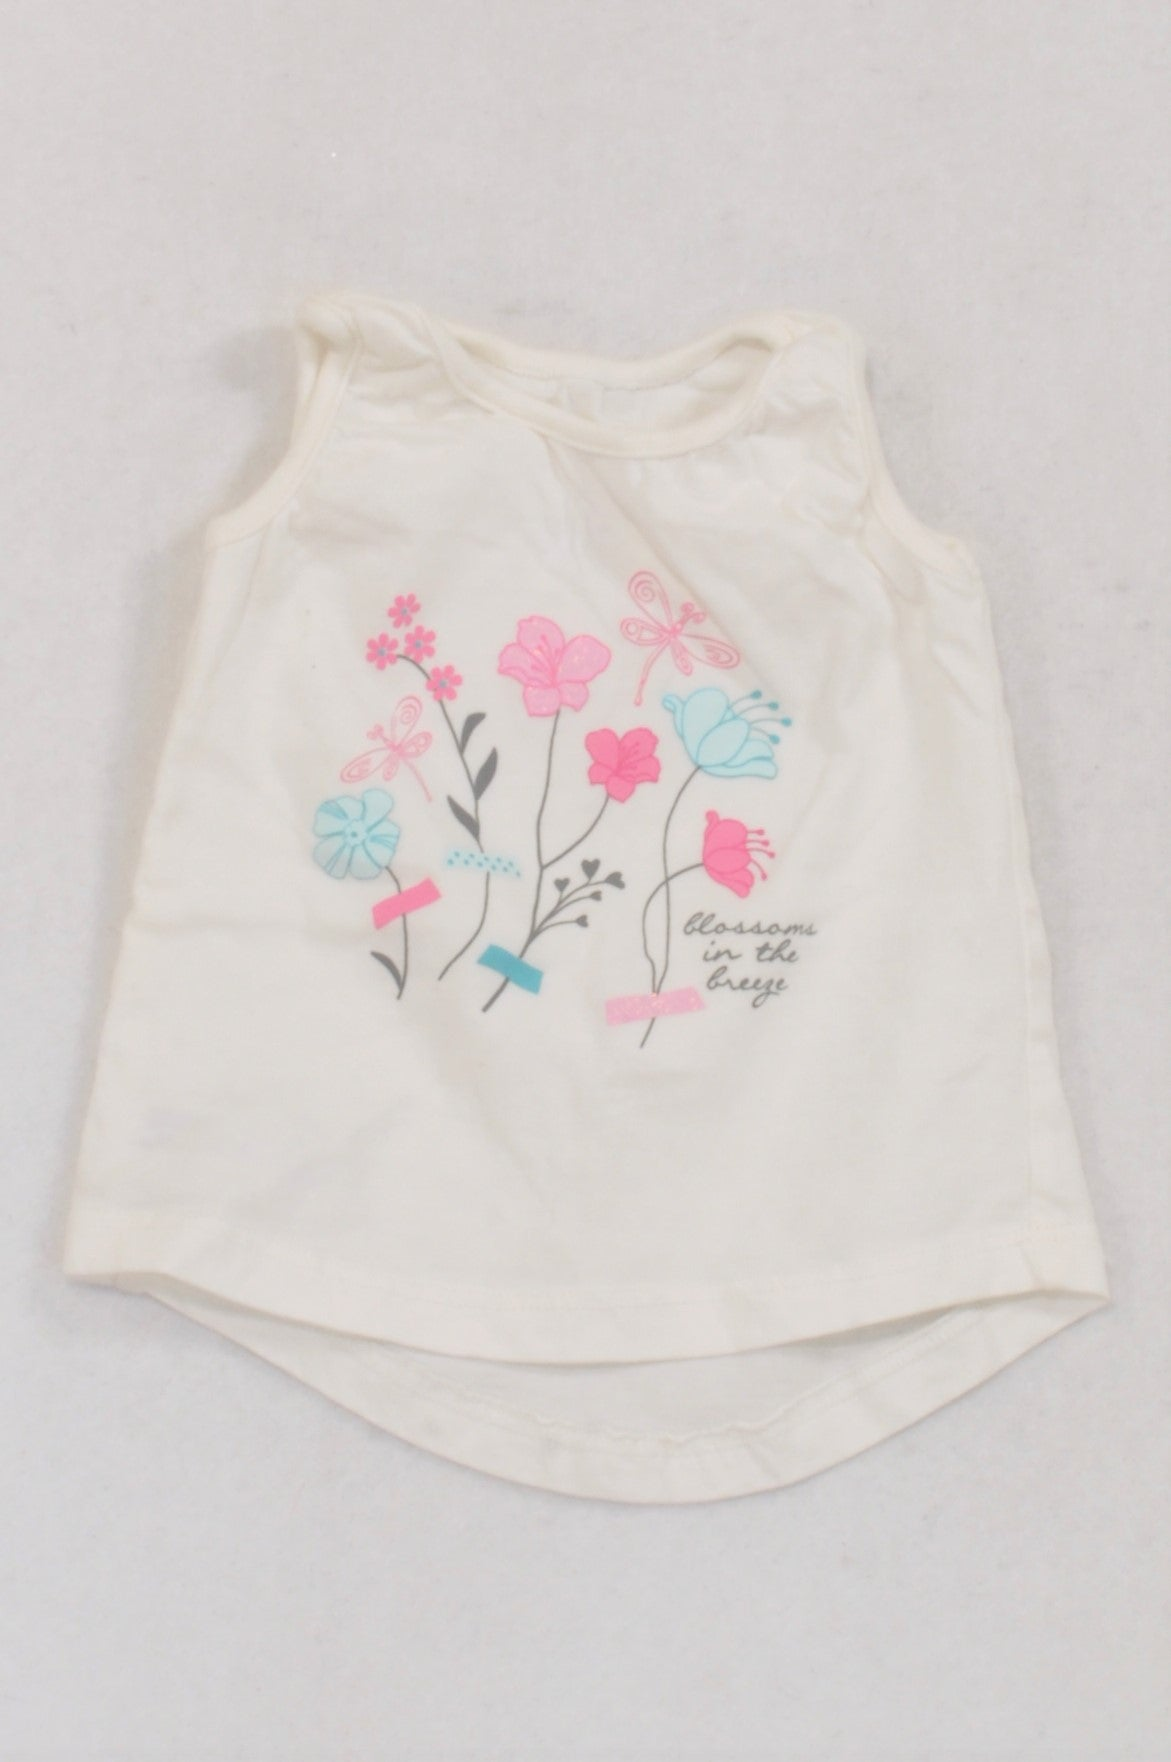 Woolworths White Floral Blossoms T-shirt Girls 3-6 months